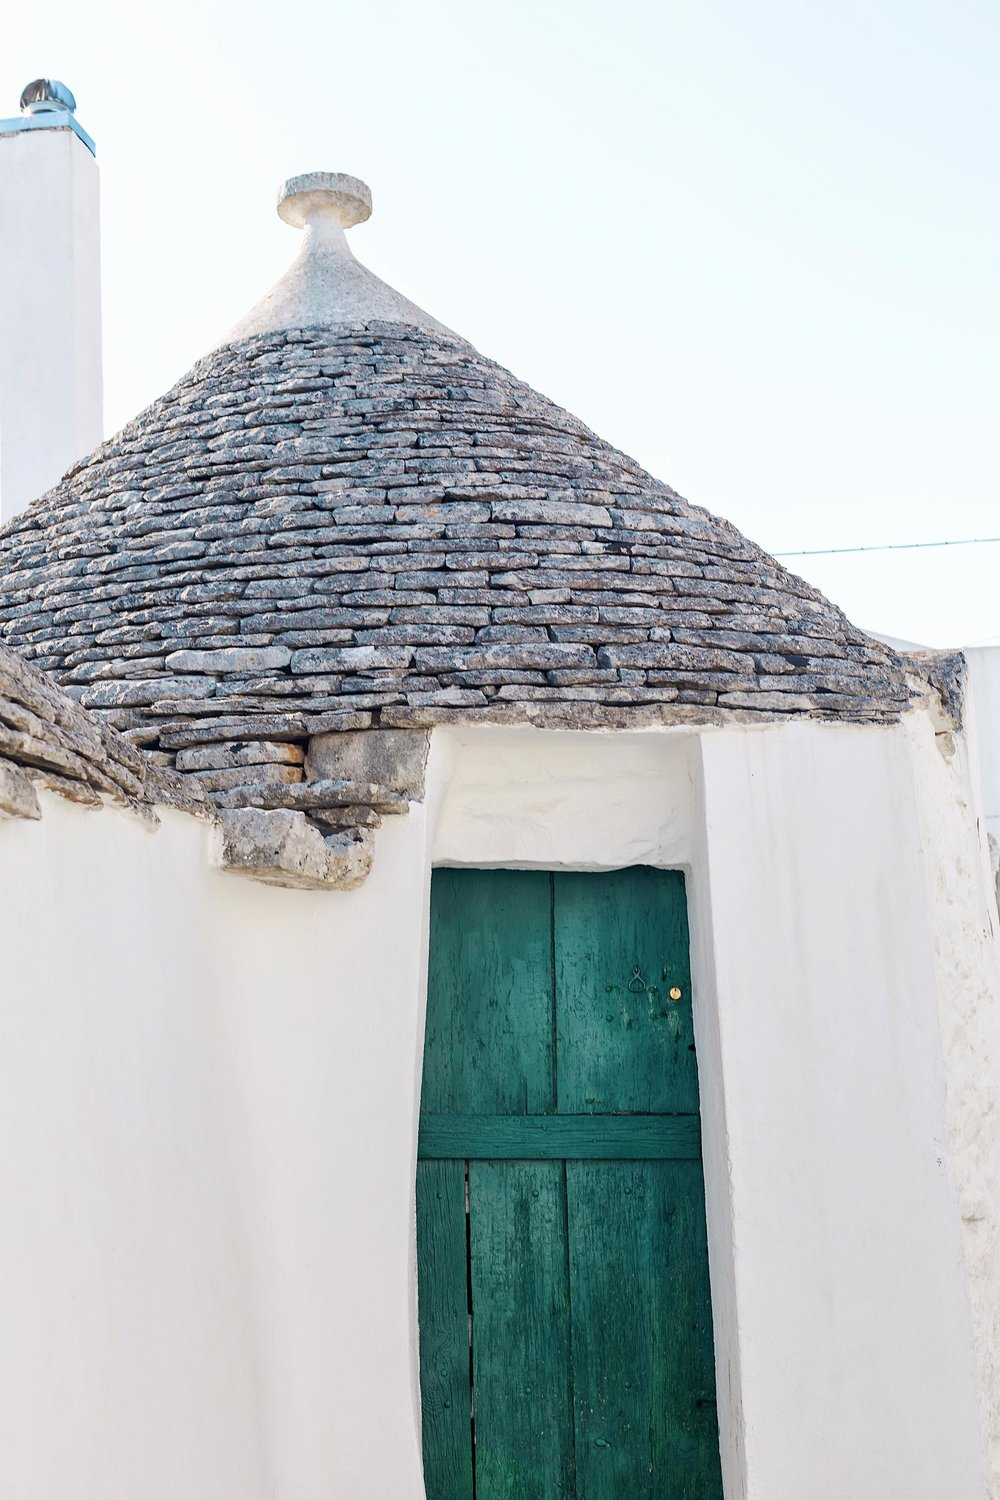 A teal door on a trullo building in Puglia